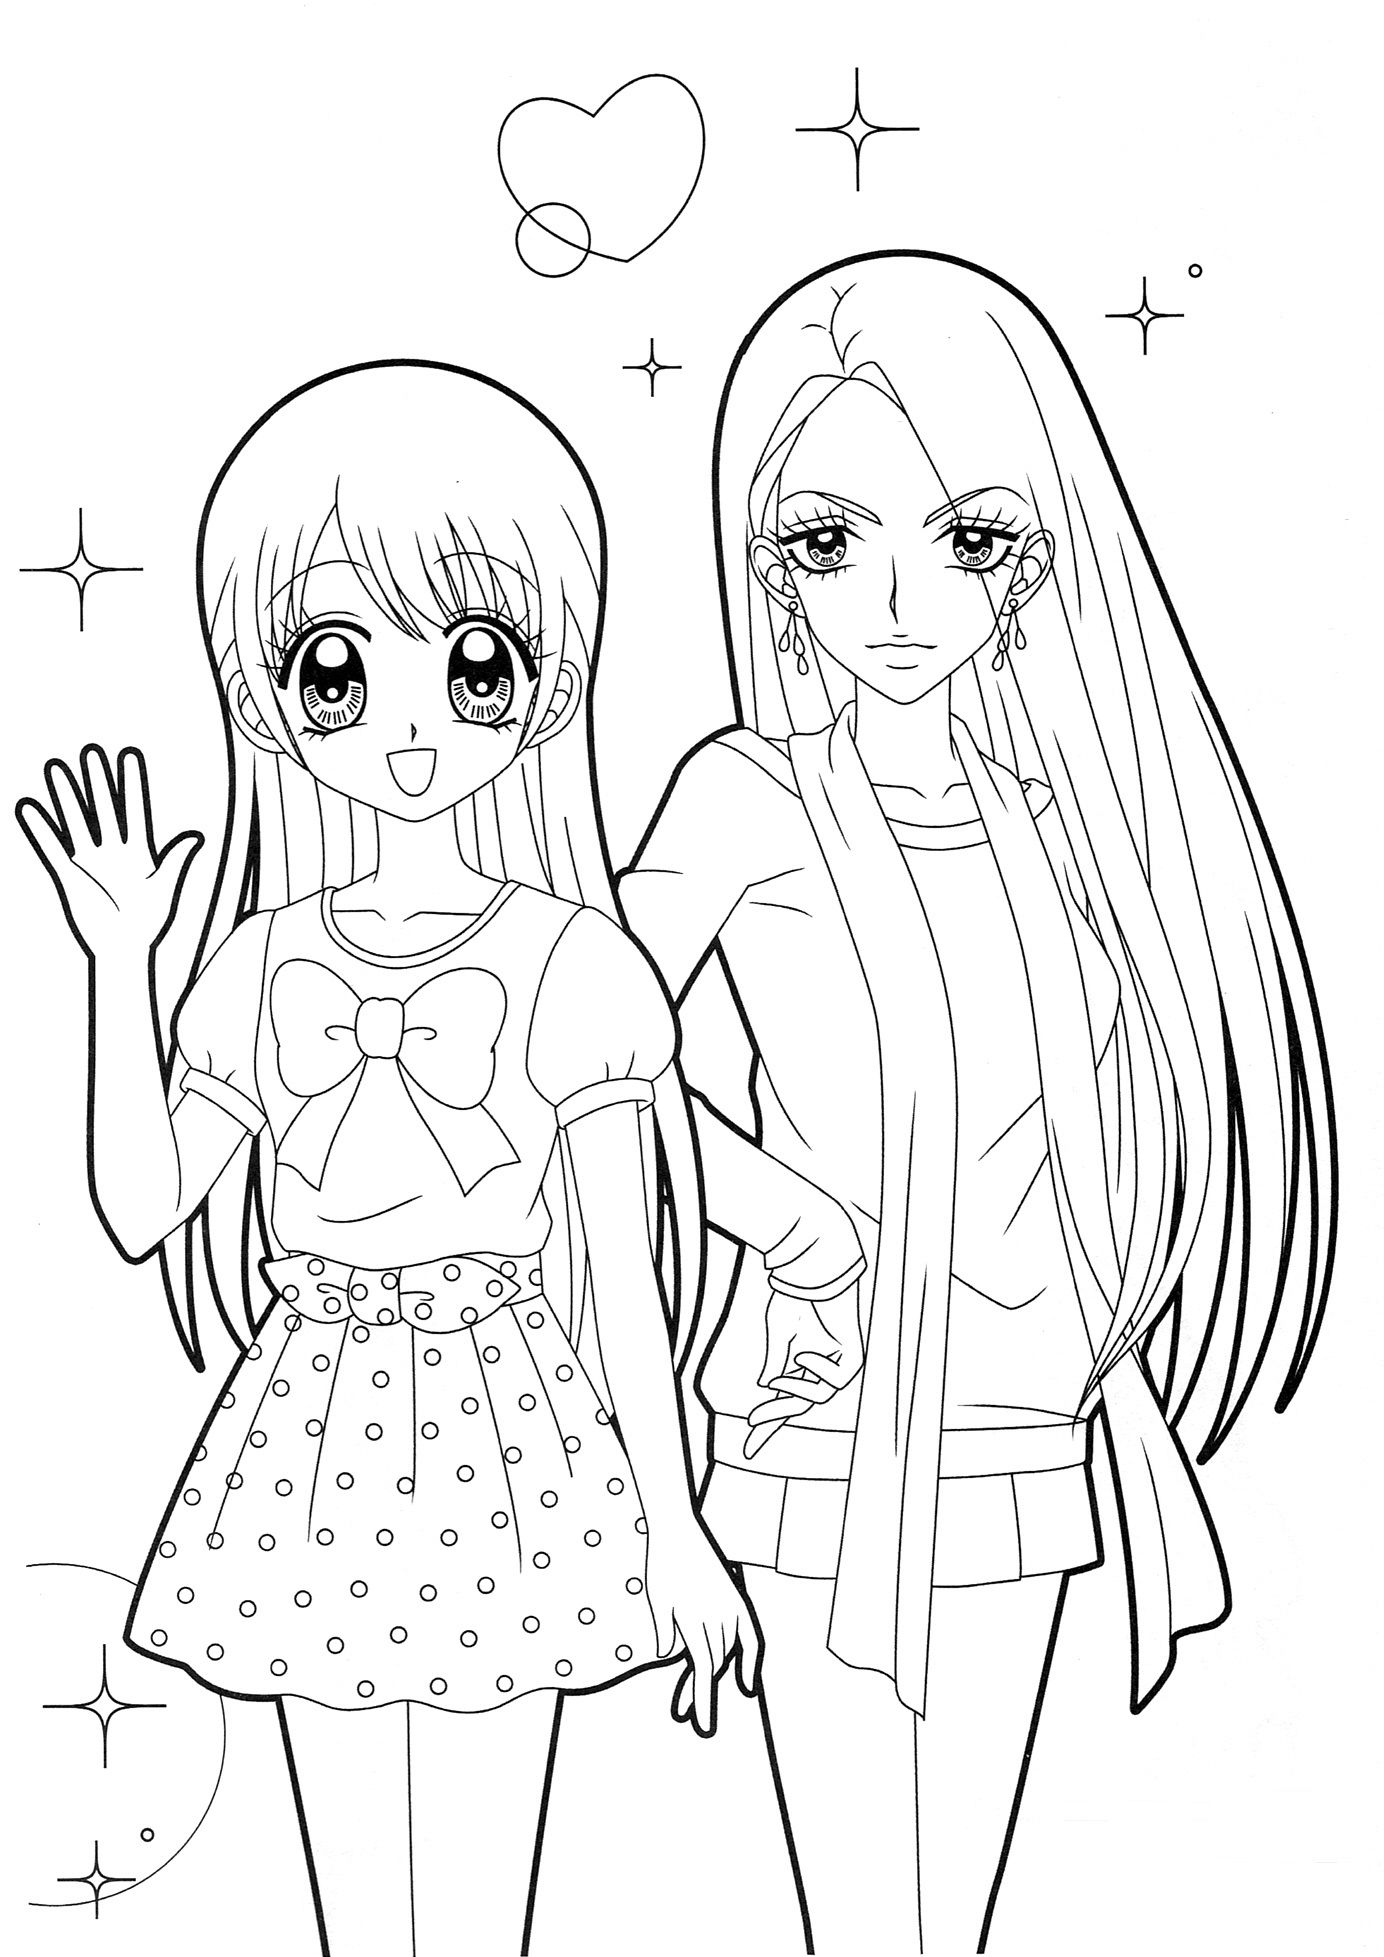 anime girl coloring pictures anime coloring pages getcoloringpagescom girl anime coloring pictures